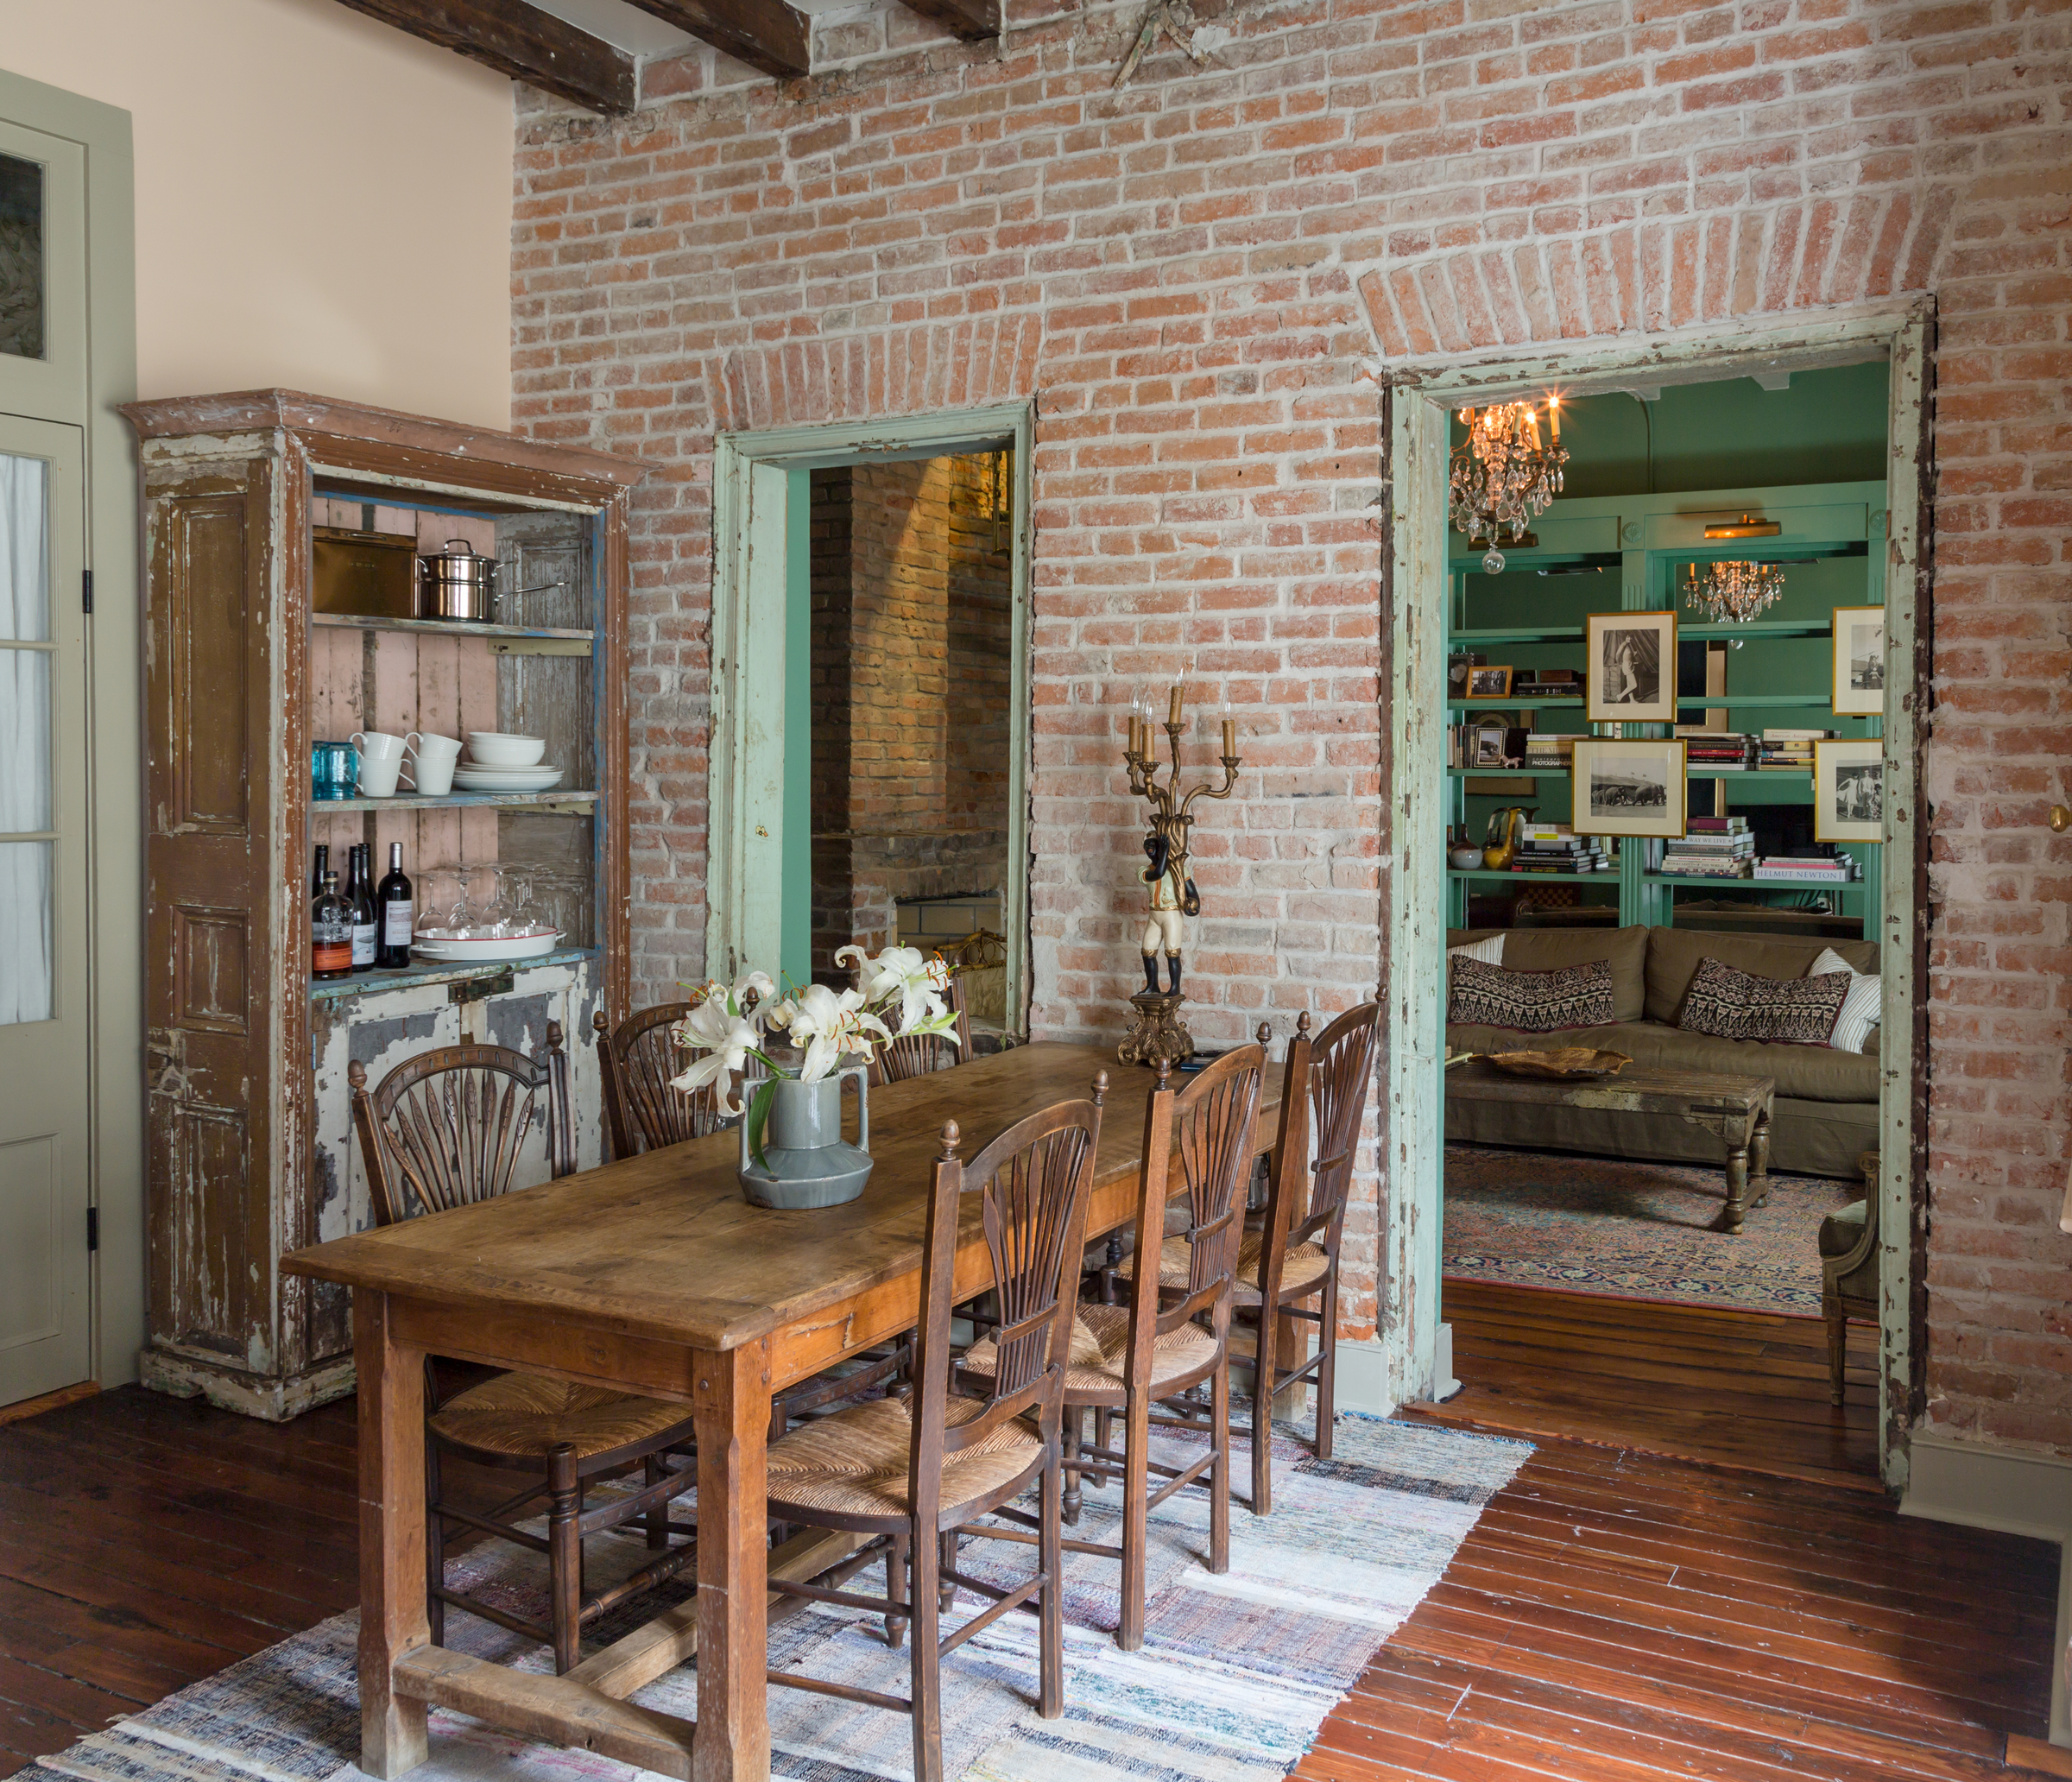 Home Decor New Orleans: Logan Killen Interiors New Orleans Home